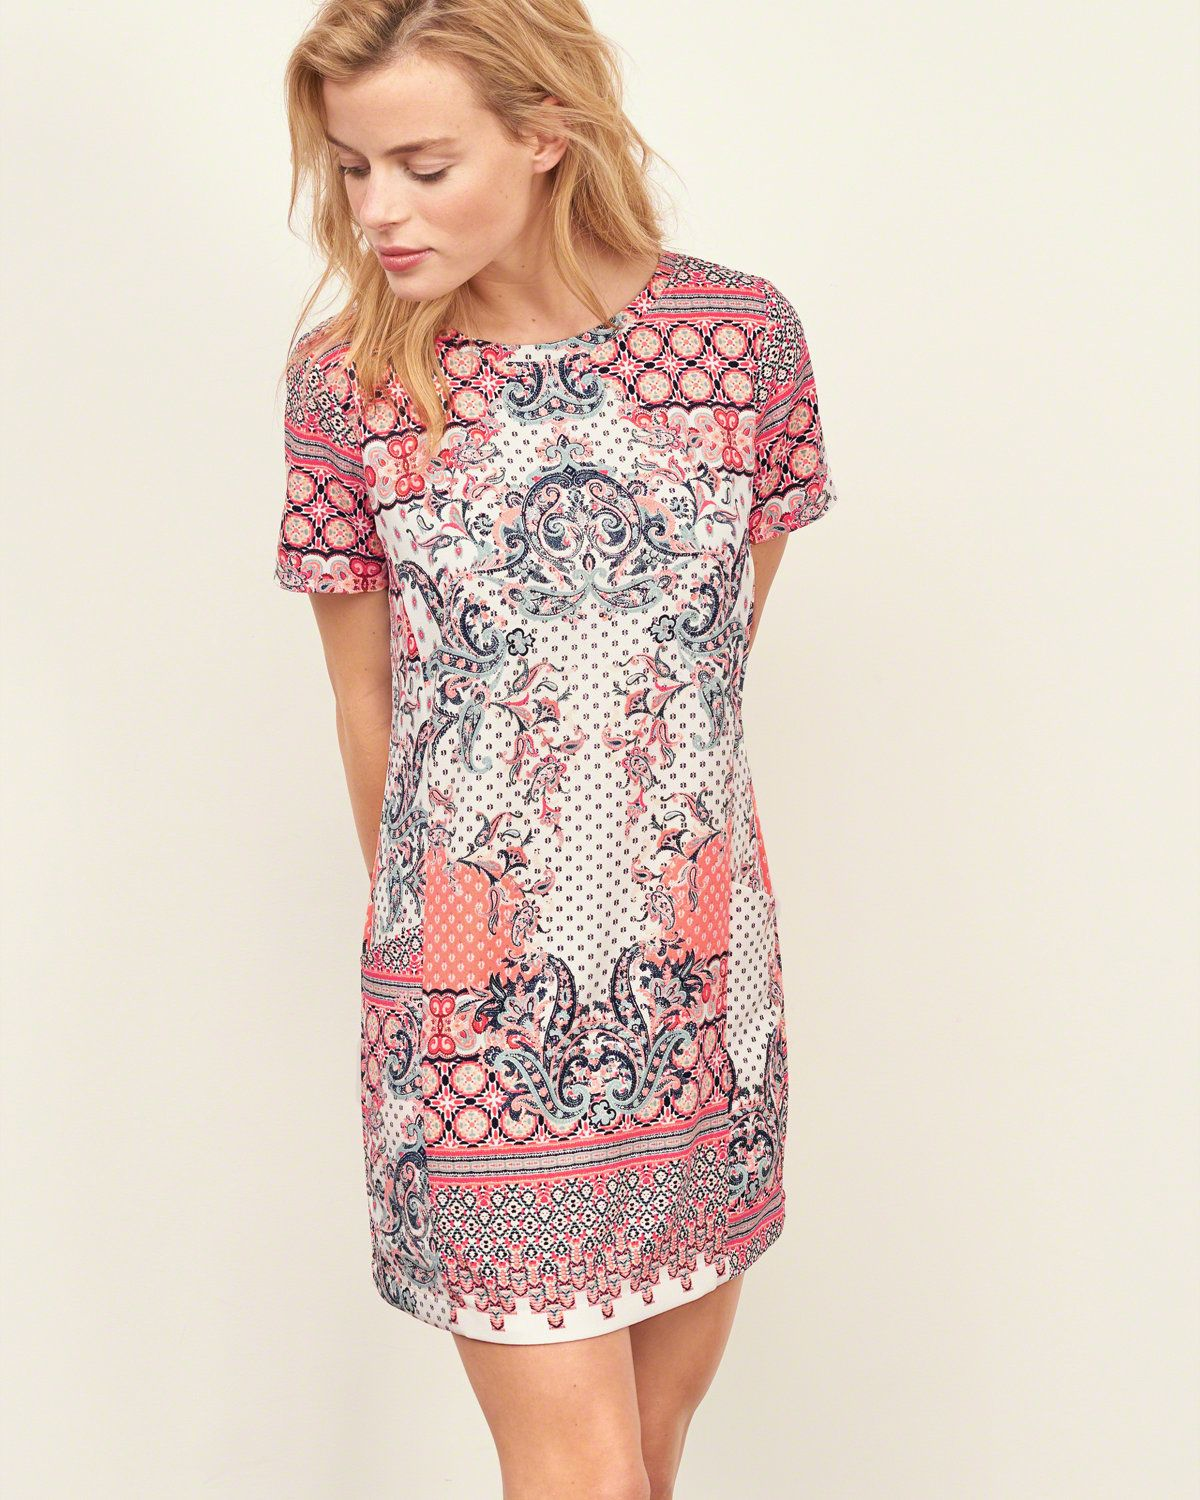 Womens - Crepe Shift Dress | Womens - New Arrivals | eu.Abercrombie.com